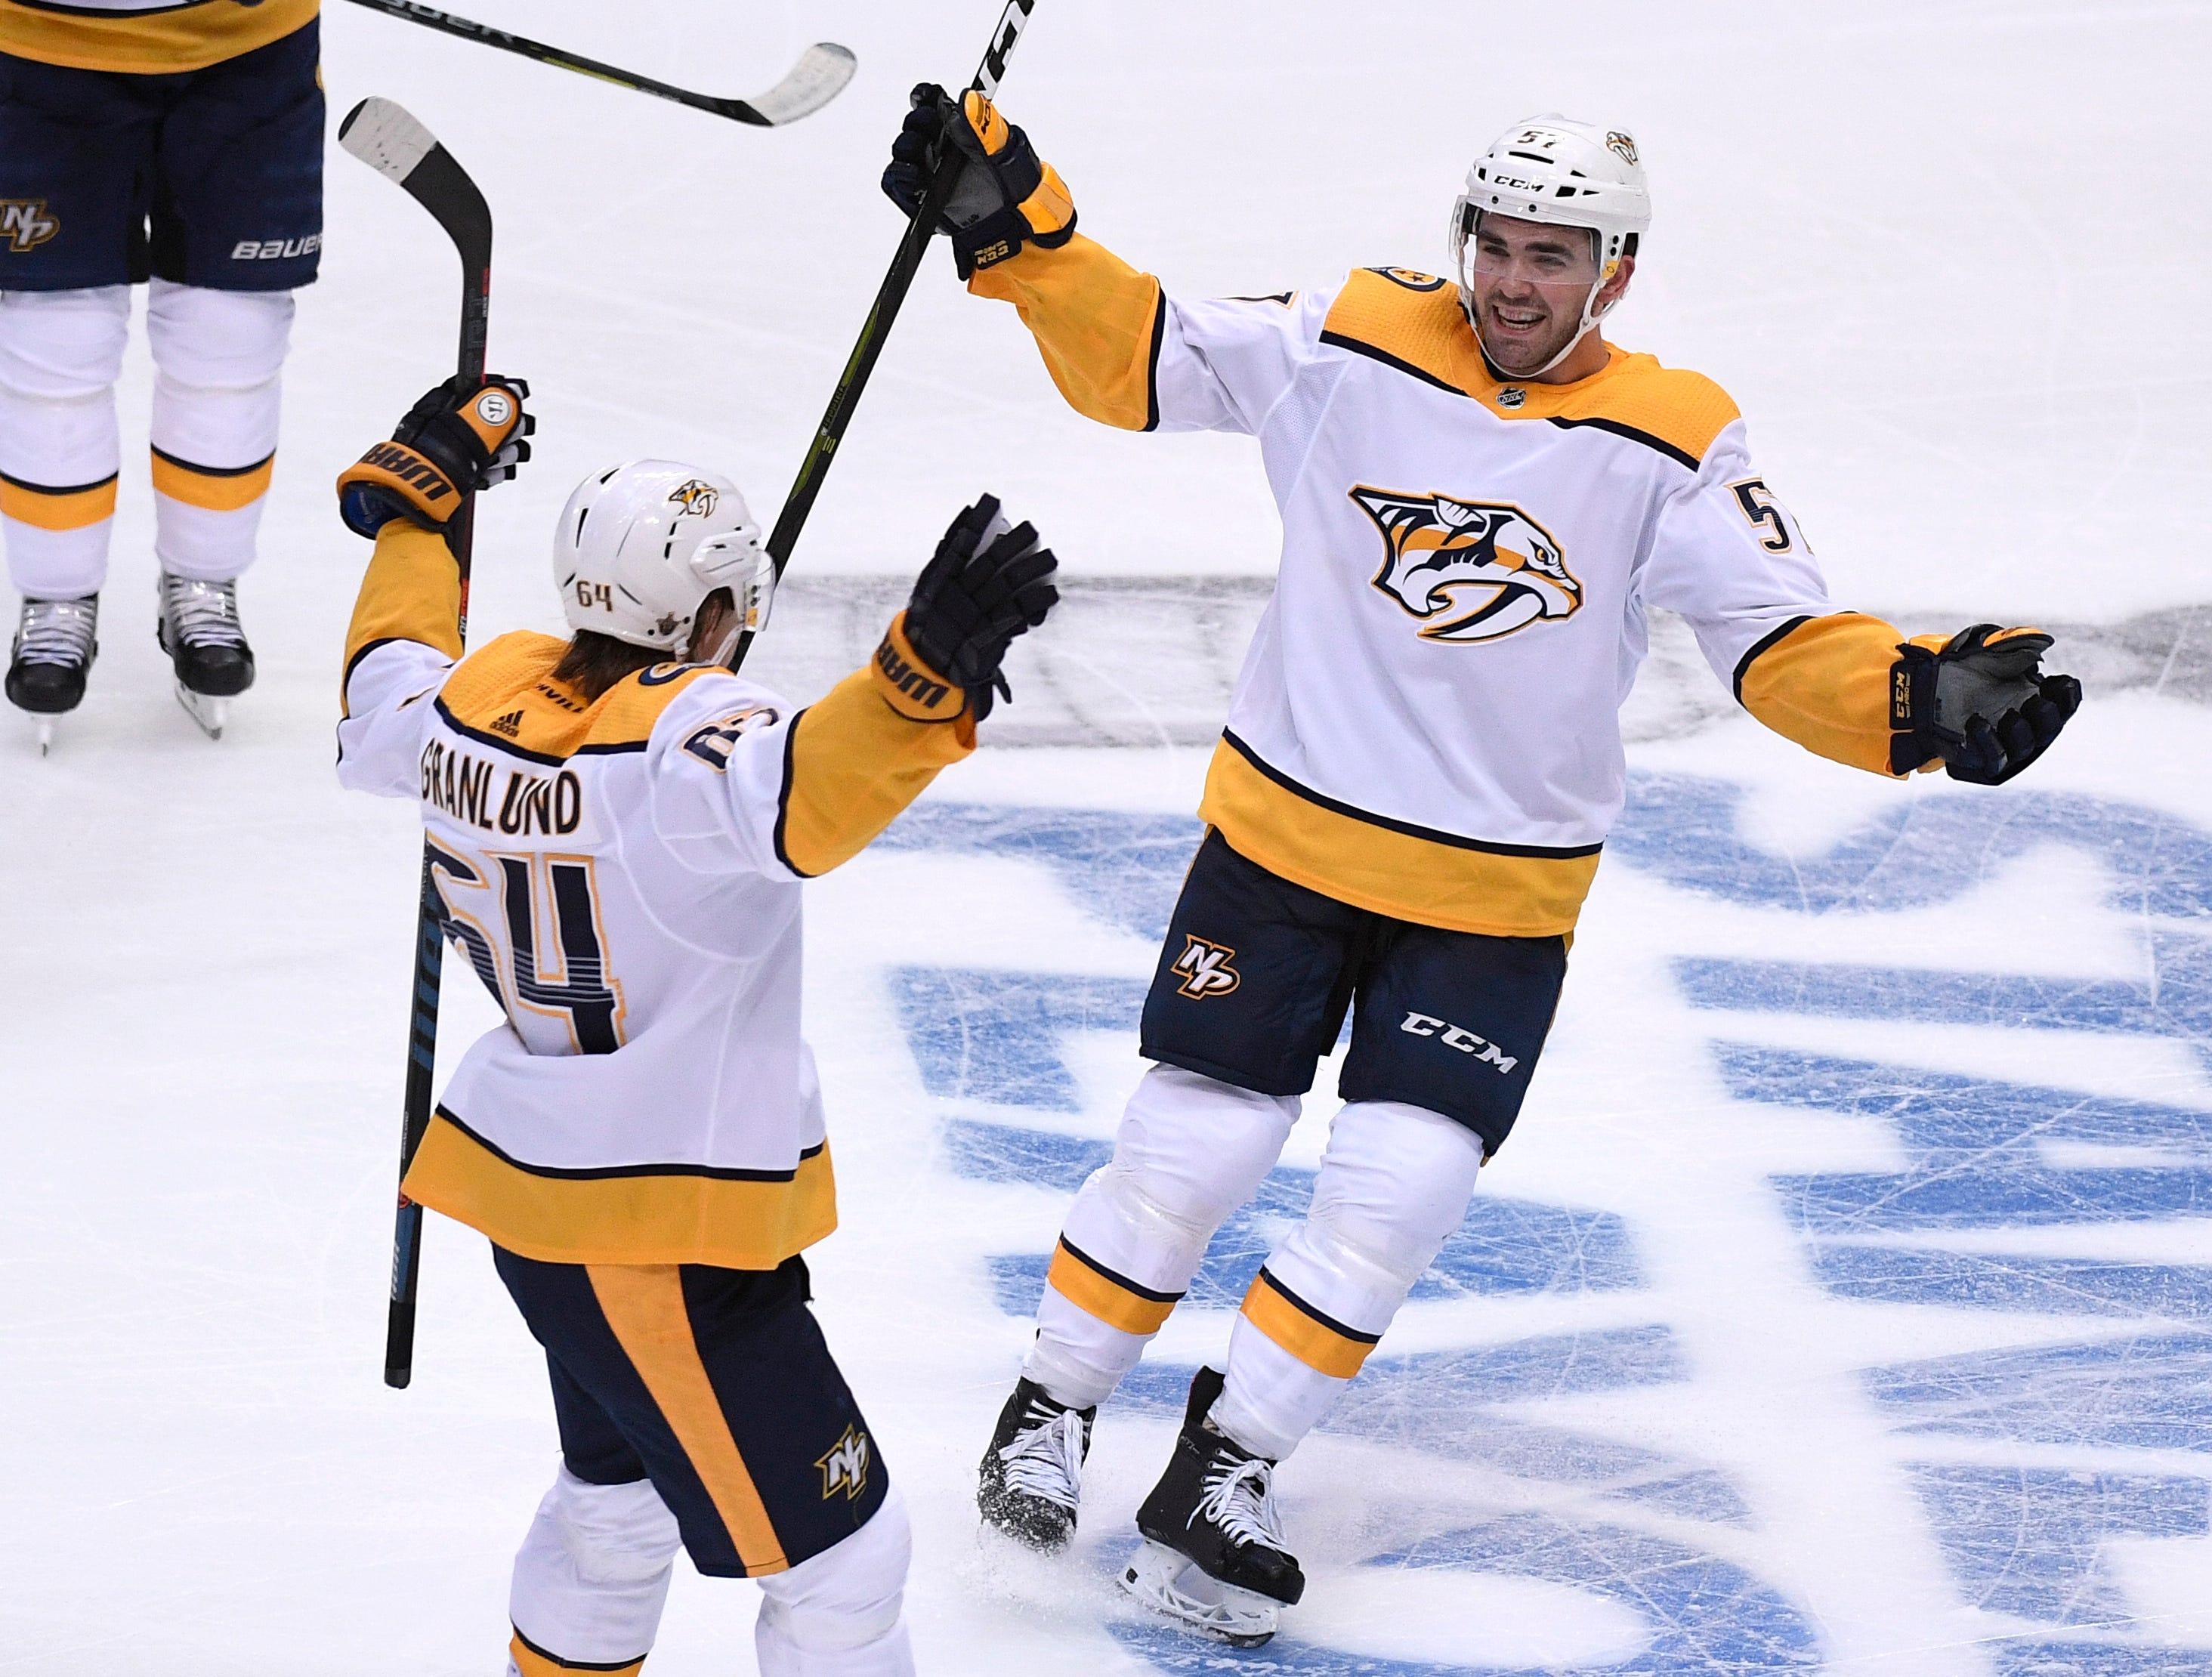 Nashville Predators center Mikael Granlund (64) celebrates his game winner with defenseman Dante Fabbro (57) during the third period of the divisional semifinal game at the American Airlines Center in Dallas, Texas., Monday, April 15, 2019.